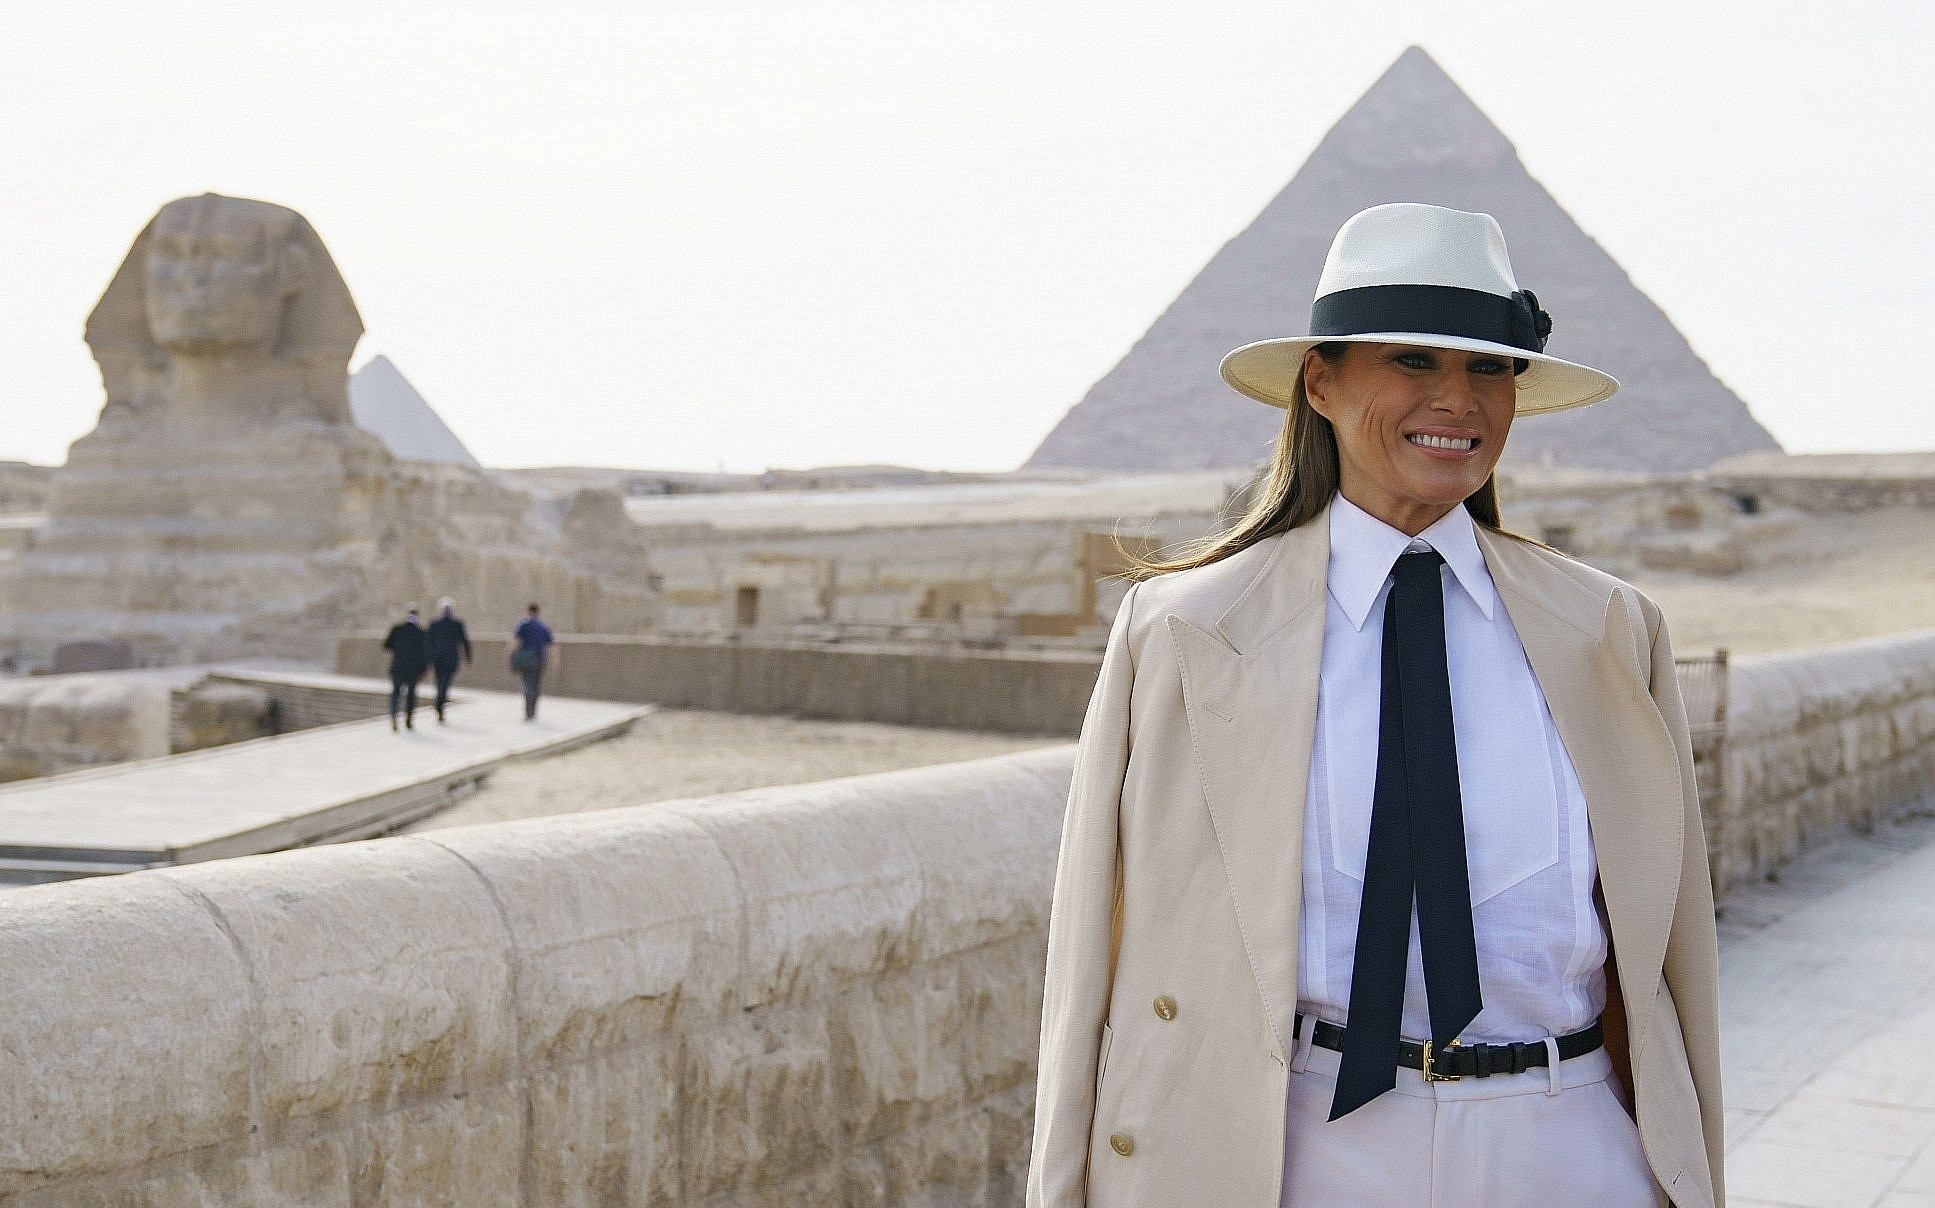 Melania Trump in Egypt to tour pyramids, Sphinx